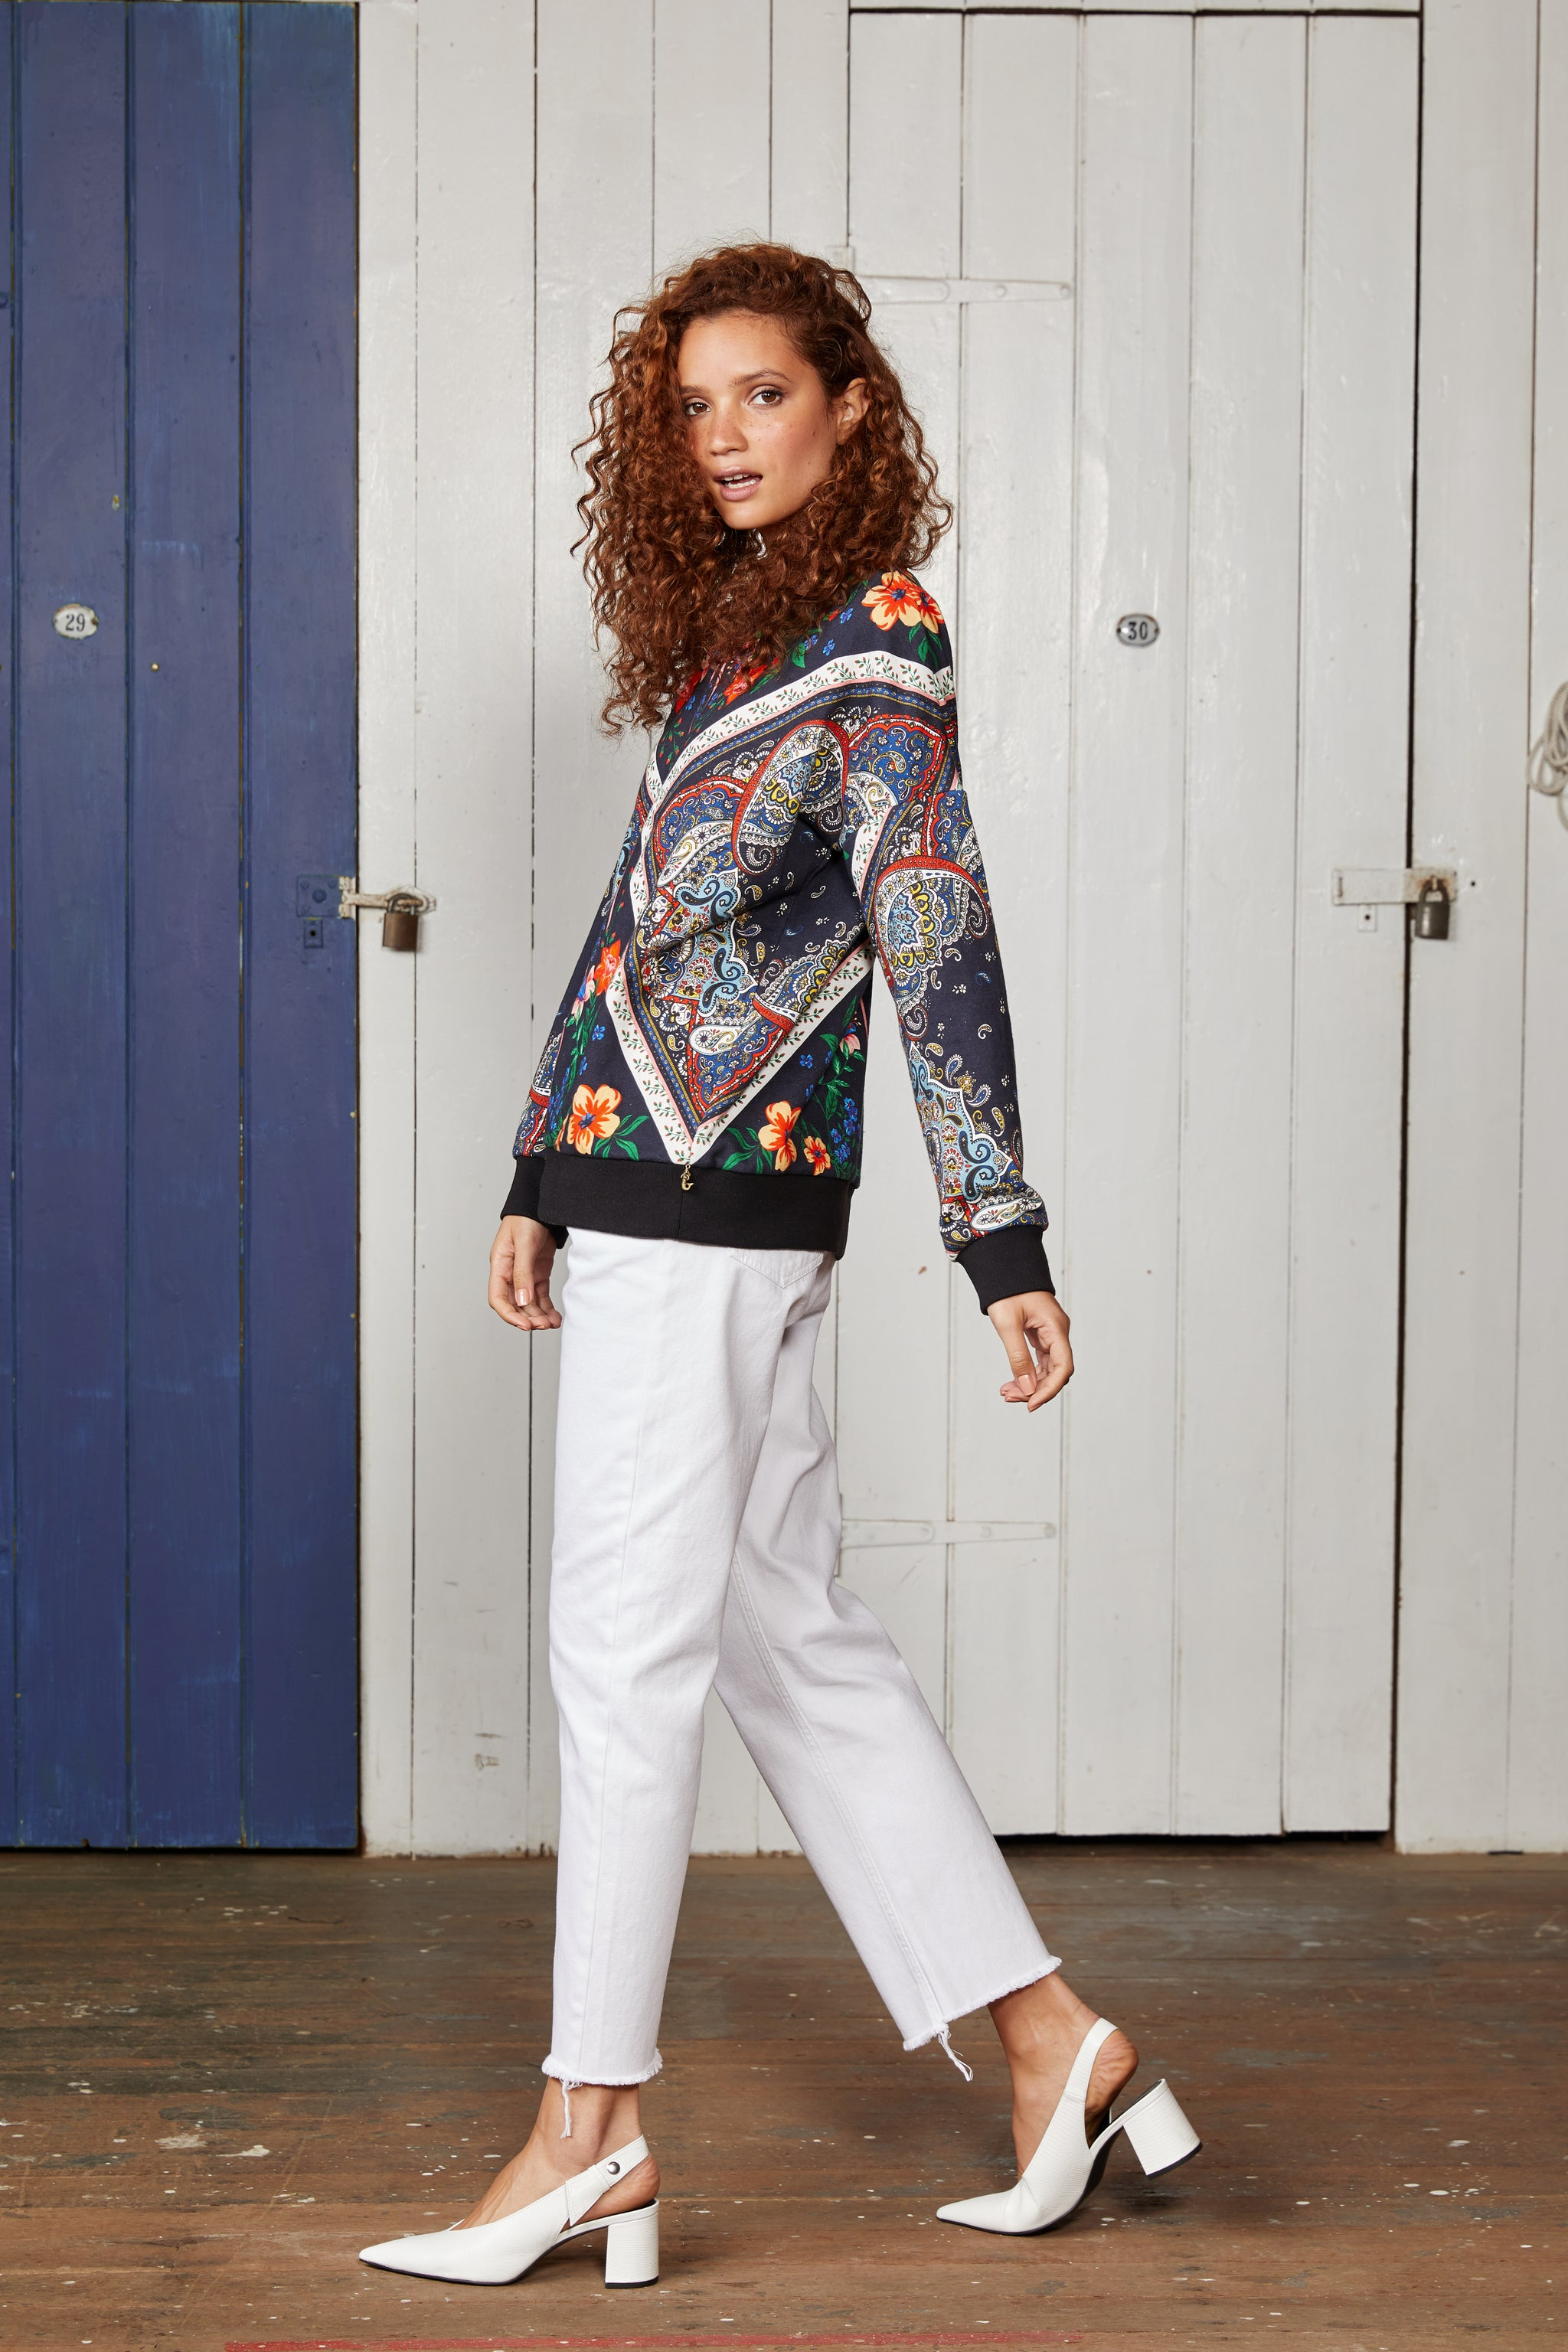 Binny Ladies Portobelo Relaxed Fit, Crew Neck Sweater with Multi Coloured Pattern